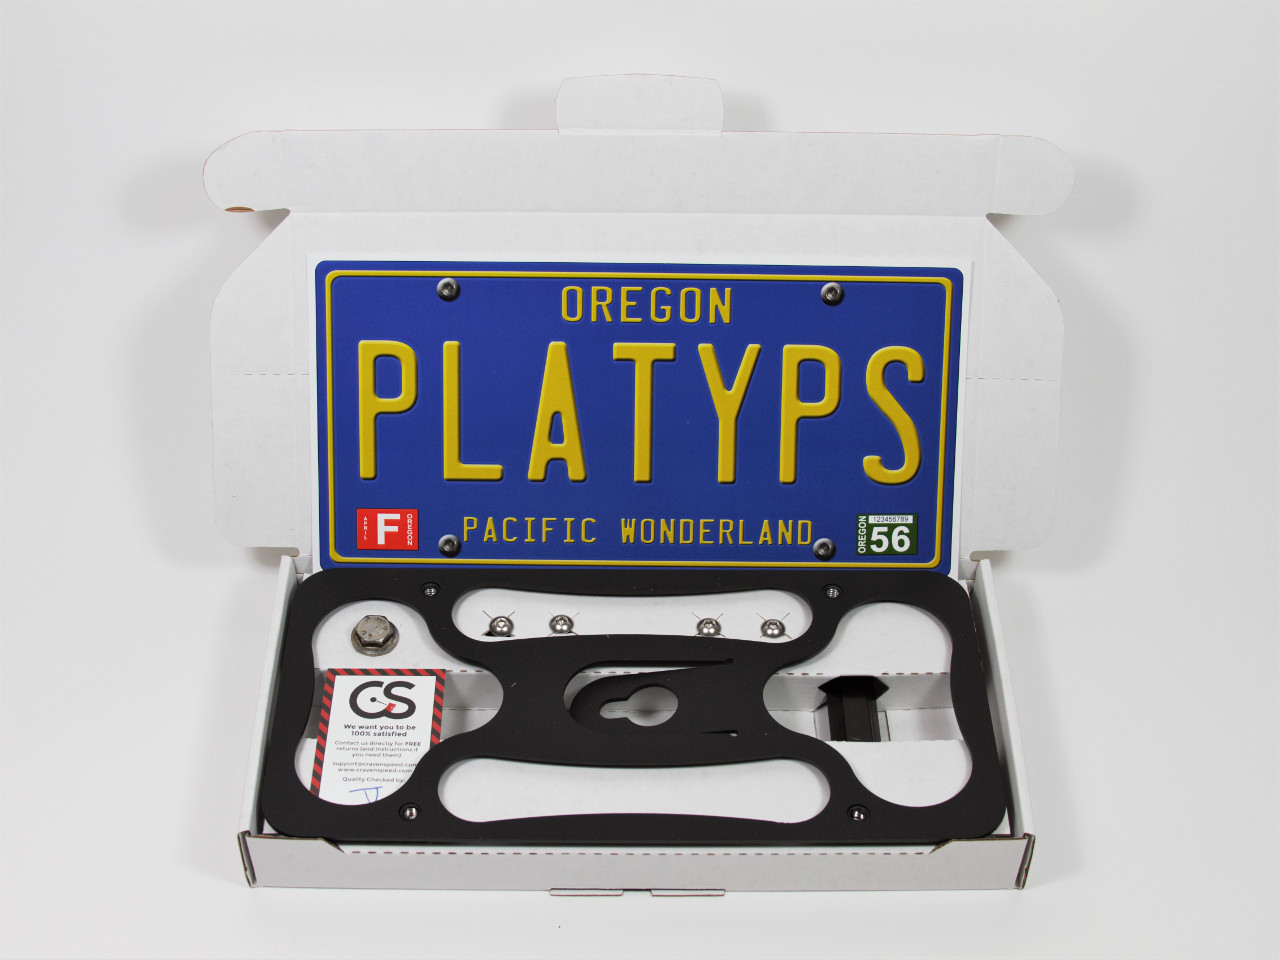 All of the parts for the Platypus License Plate Mount in their box.